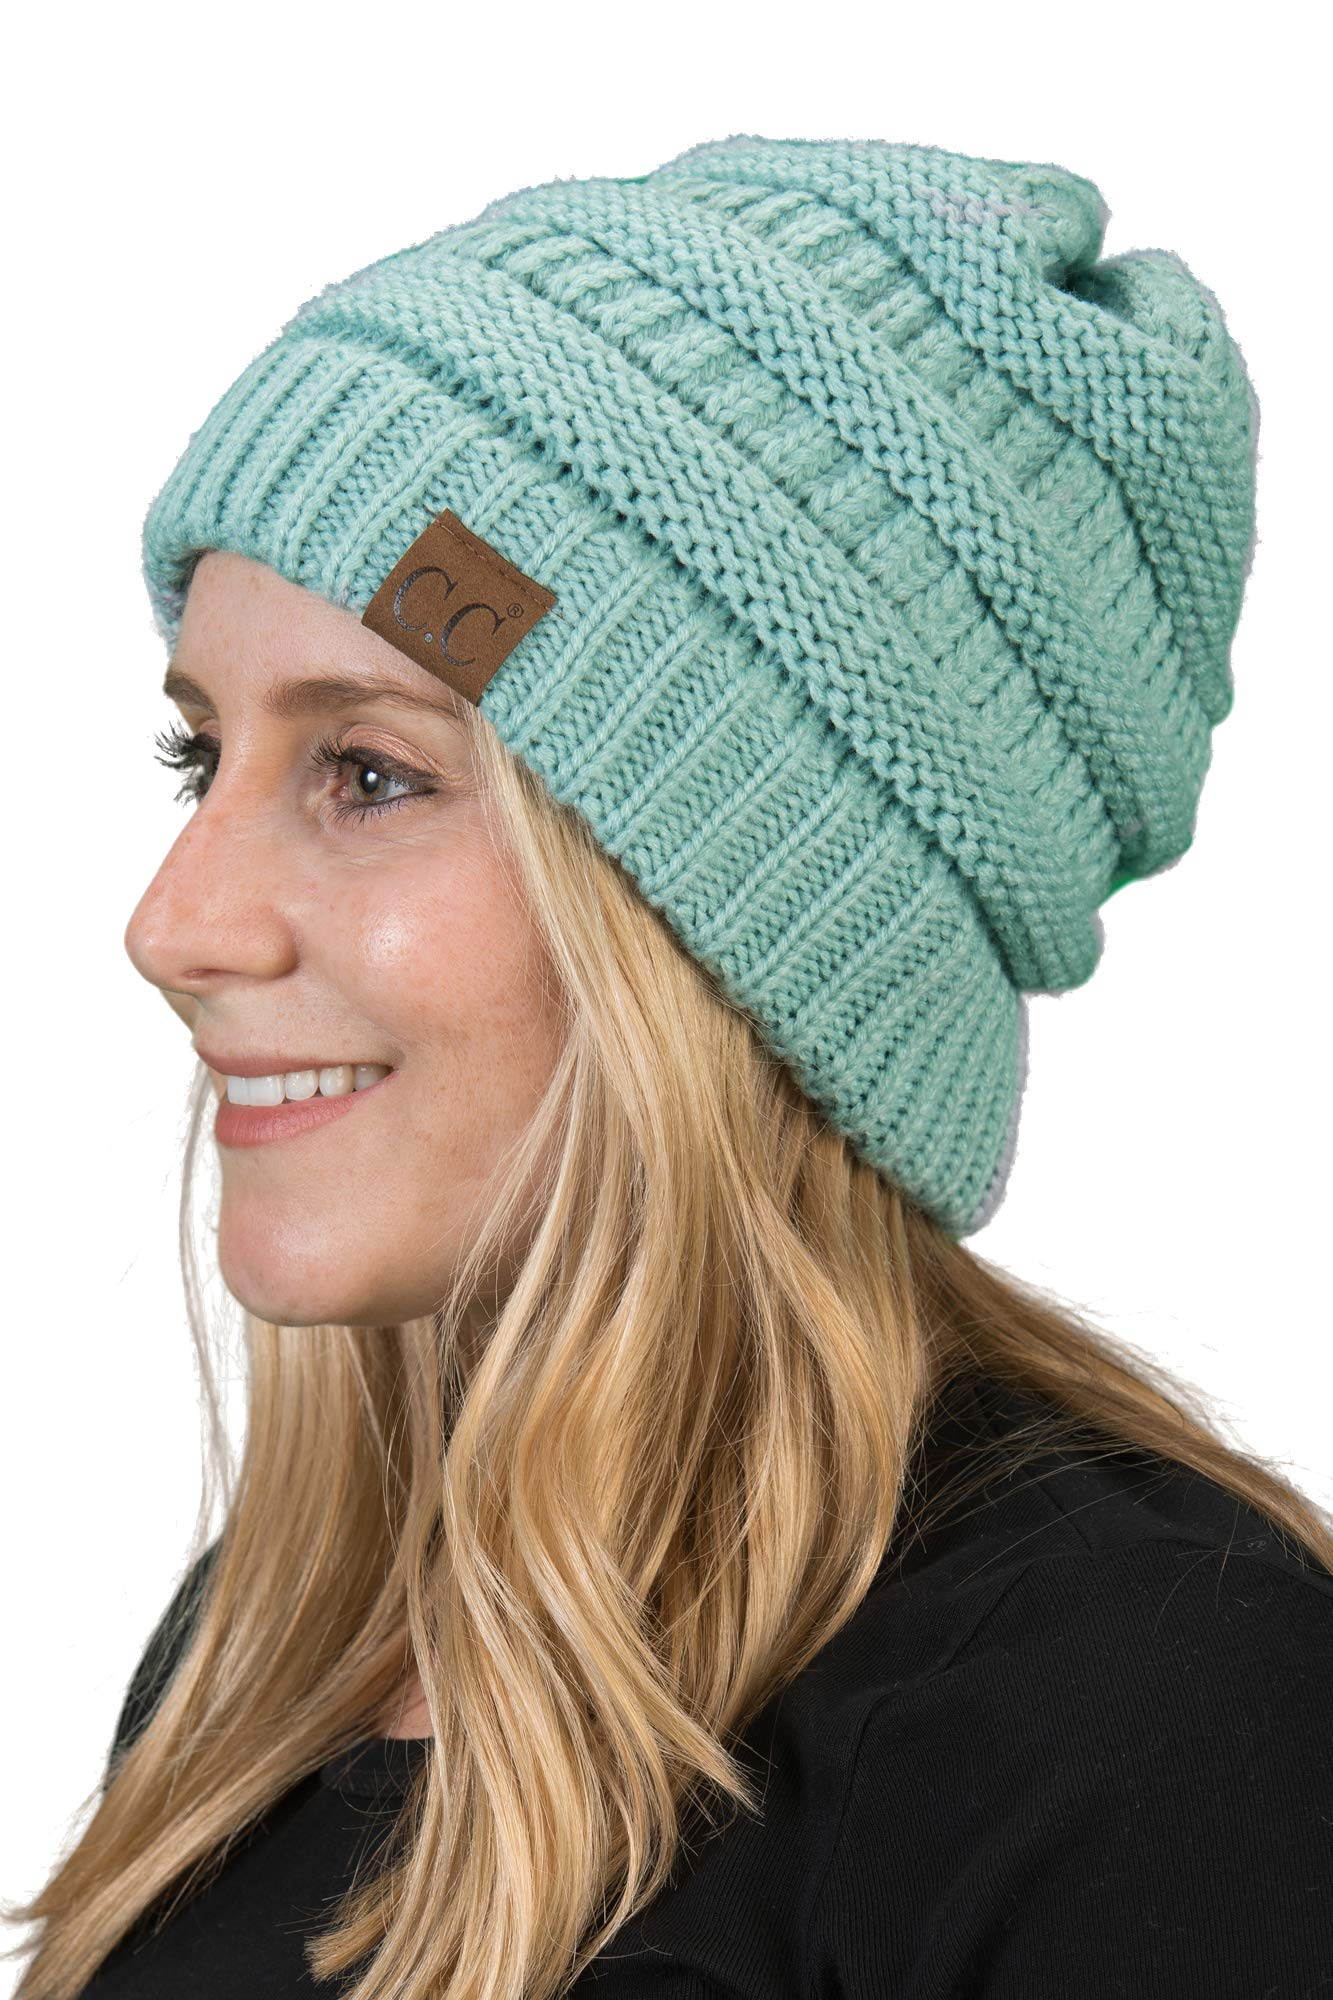 H-6020a-54 Solid Ribbed Beanie - Mint, One Size Fits Most